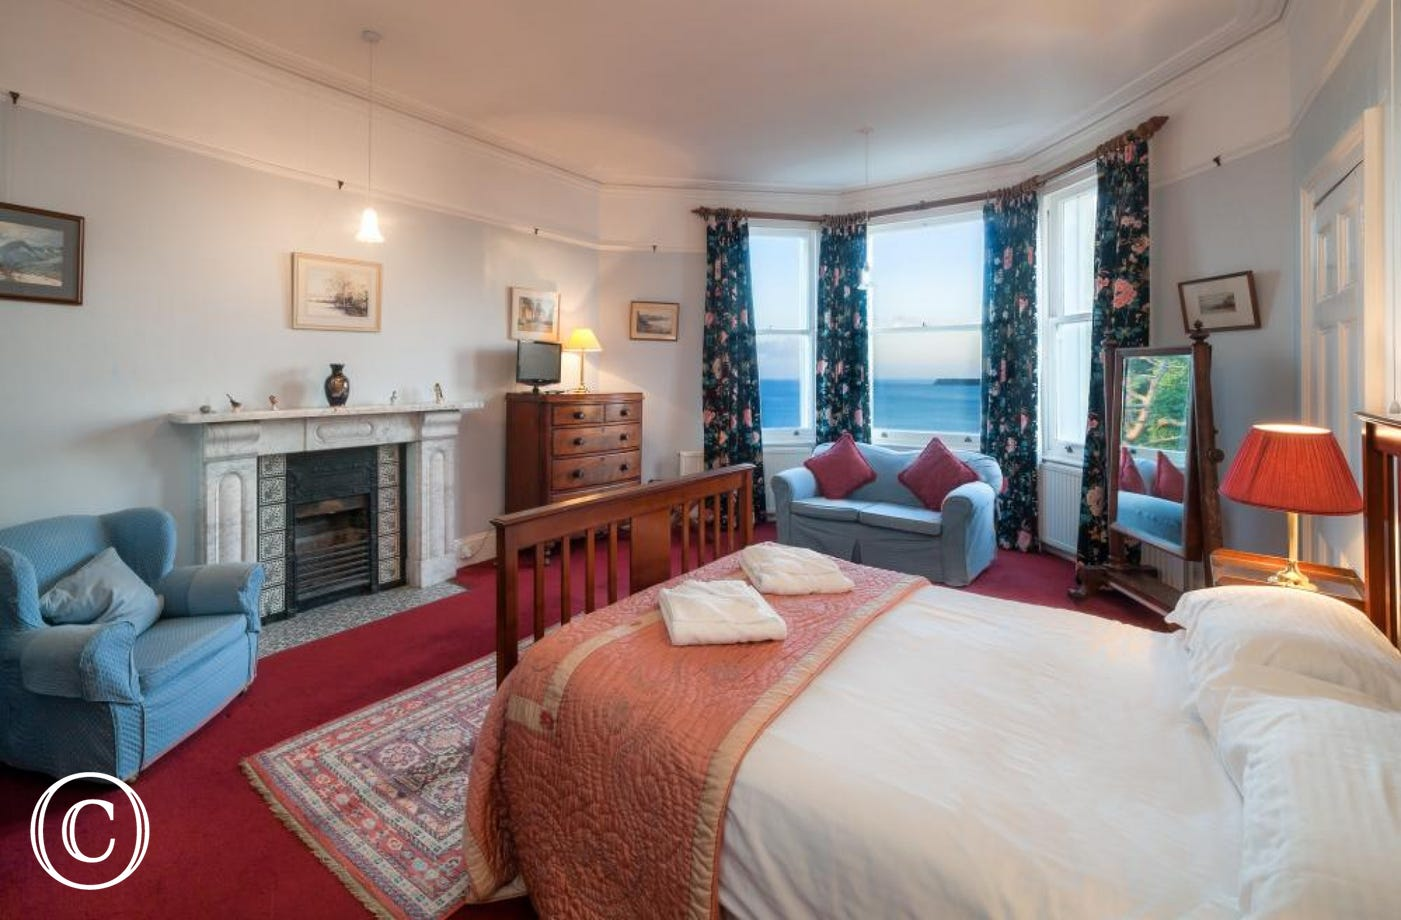 Longcroft House, Torquay - Master bedroom with stunning sea views